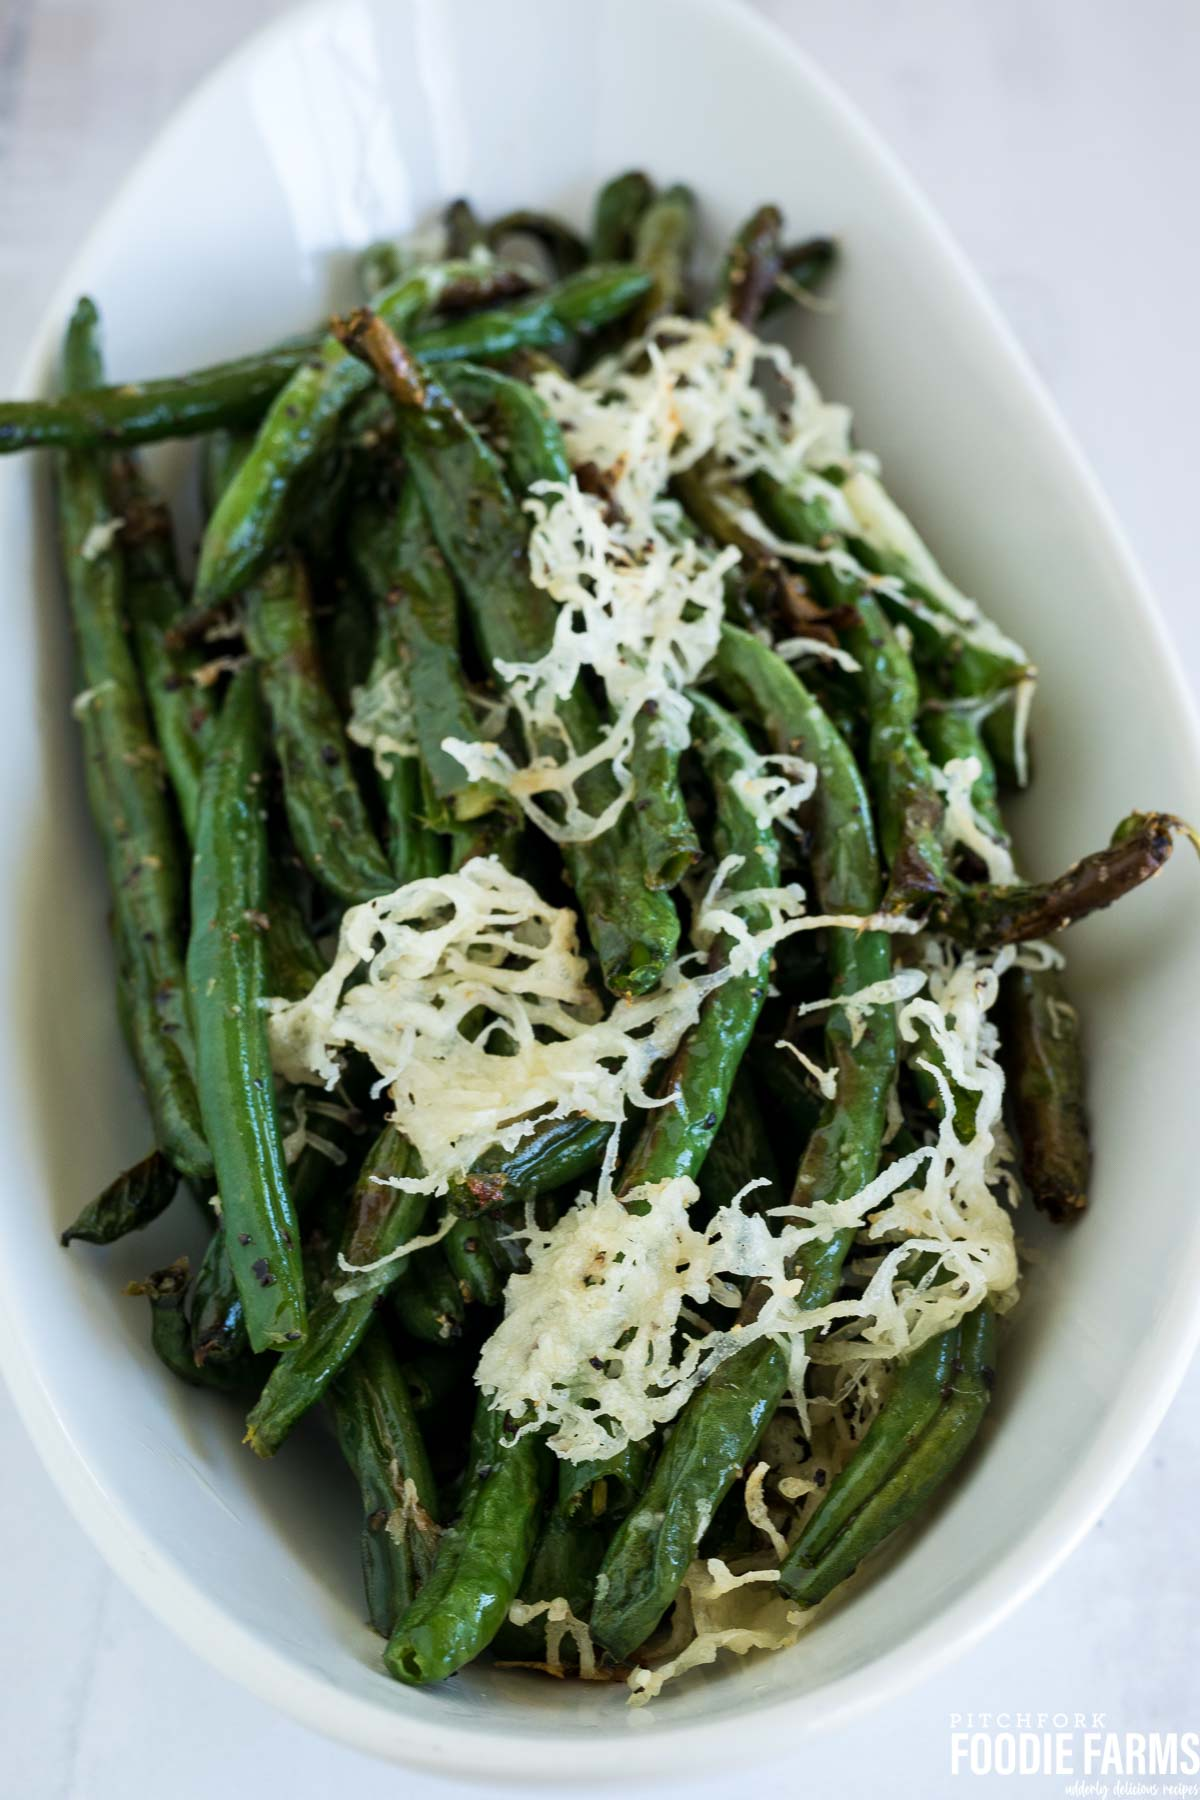 Oven baked green beans in a white serving dish with toasted parmesan cheese on top.